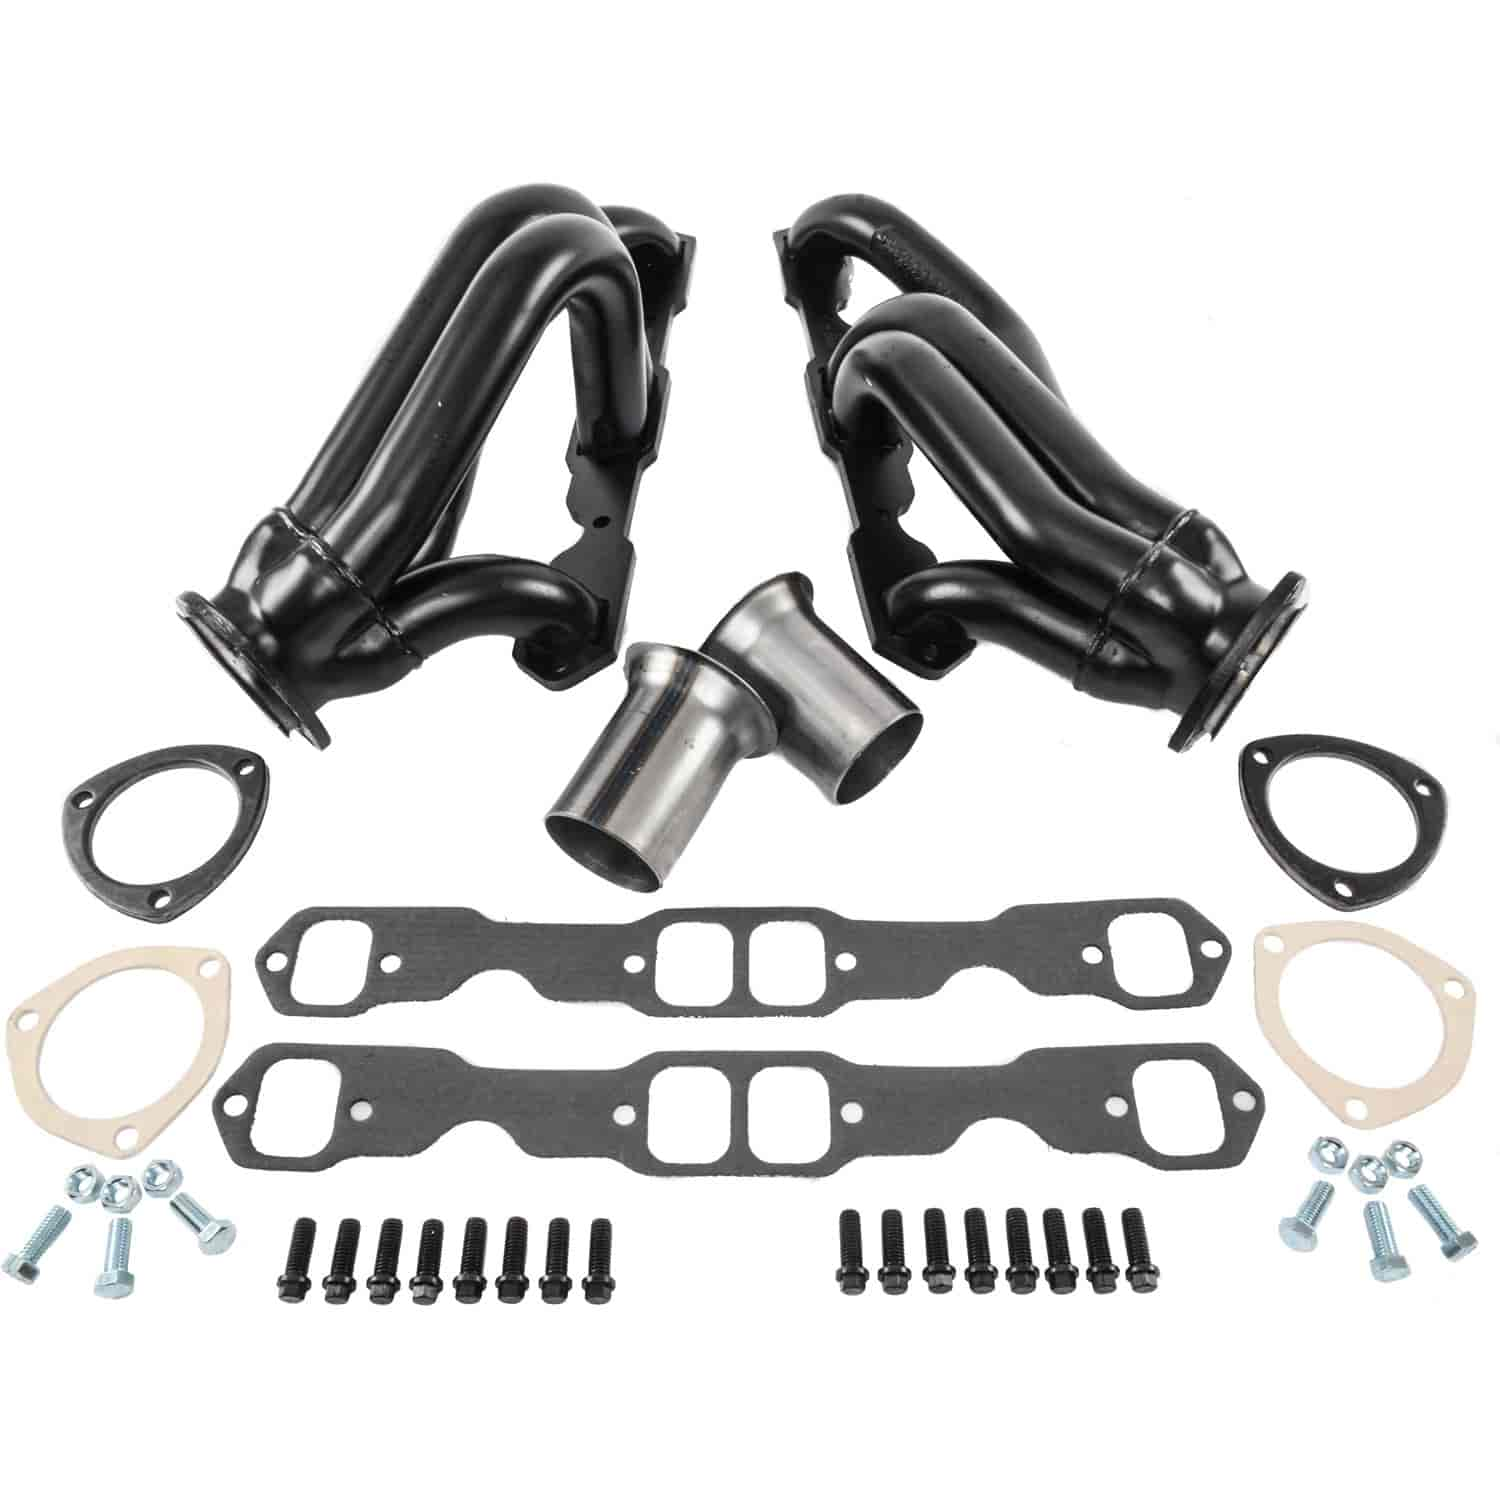 Hedman 69560 S10 Engine Swap Headers 1982-2000 S10 With